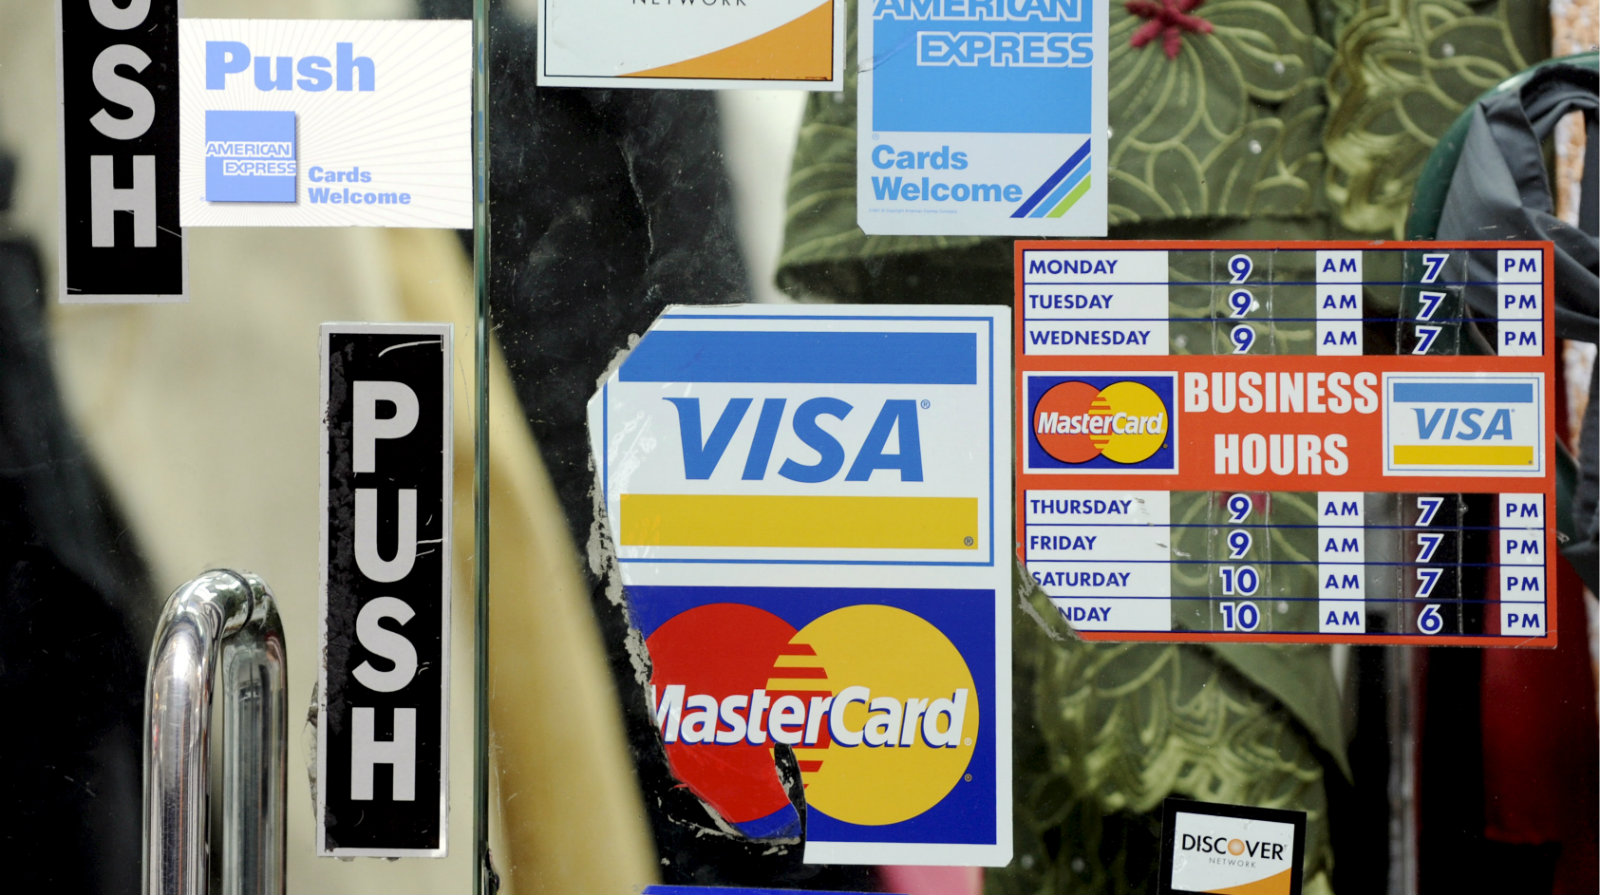 After years of diffidence among users, credit cards hit a